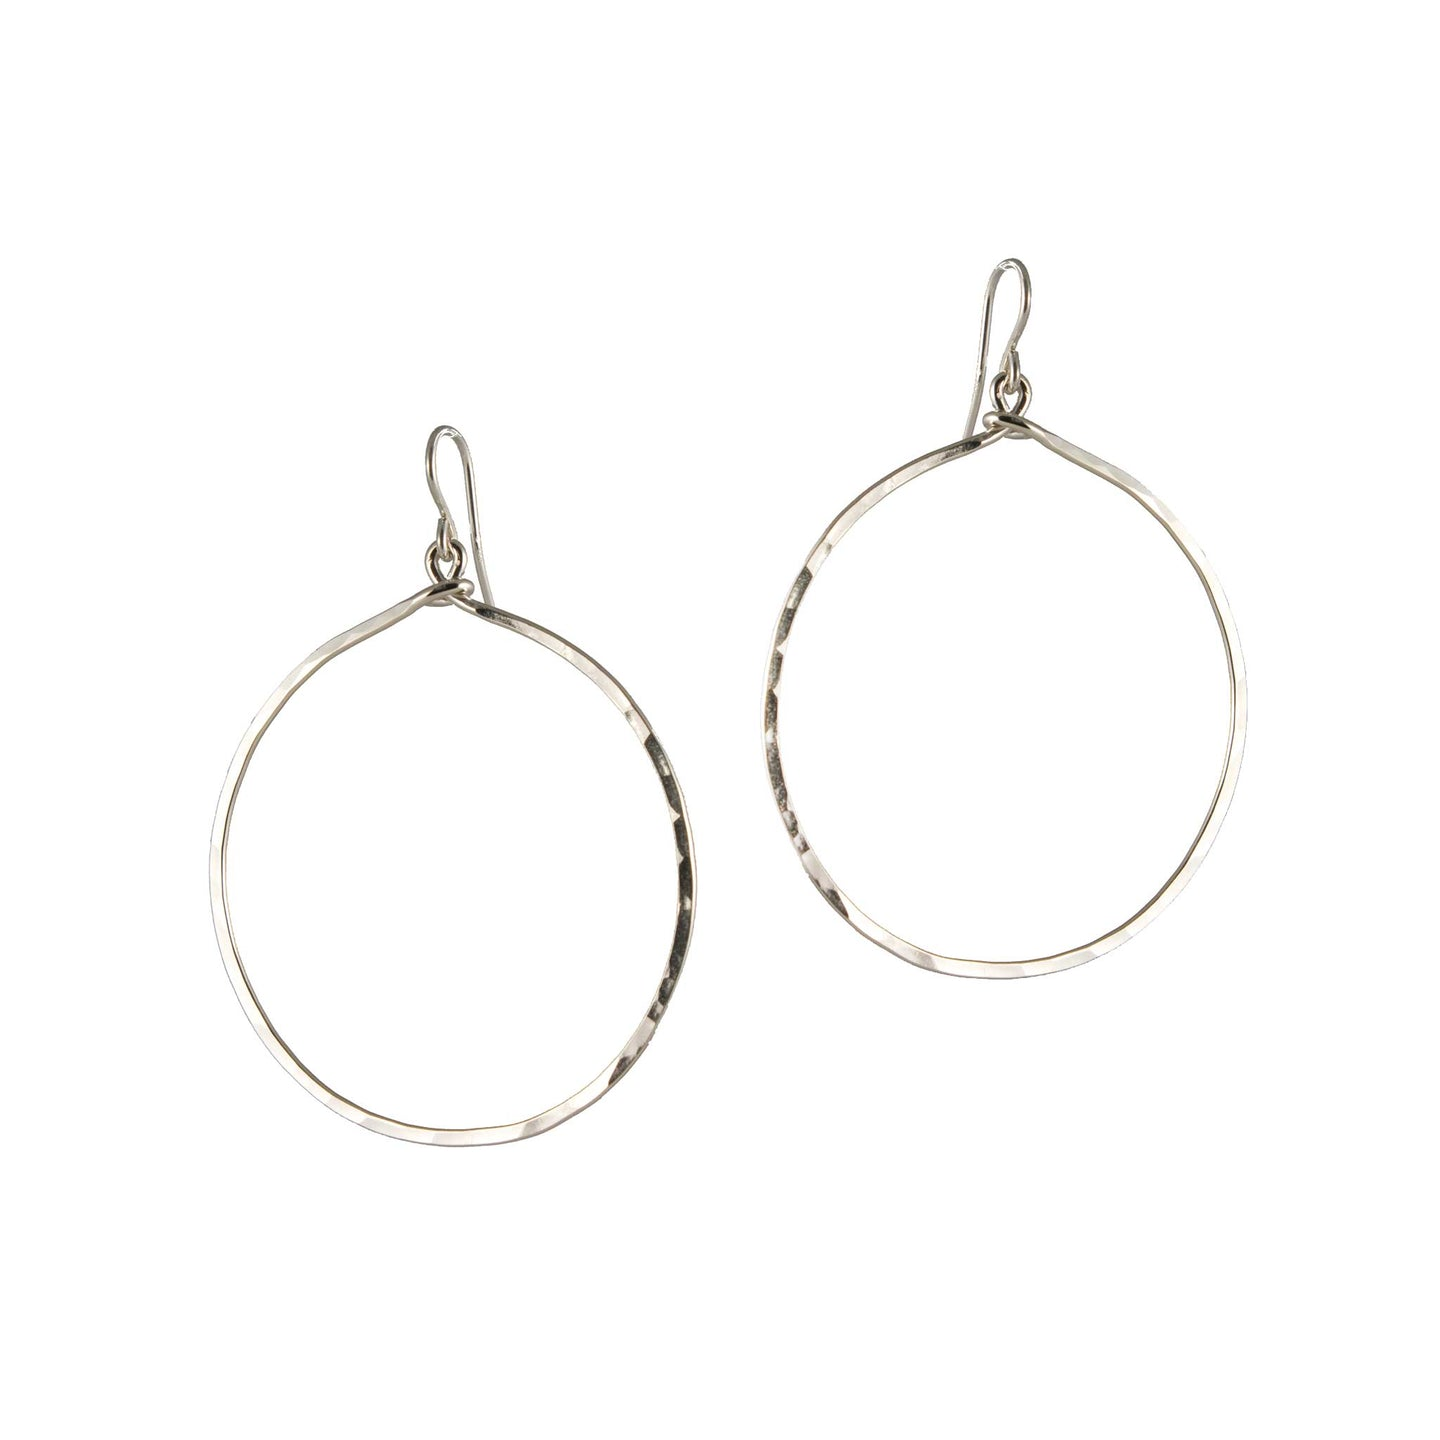 Medium Loop Earrings